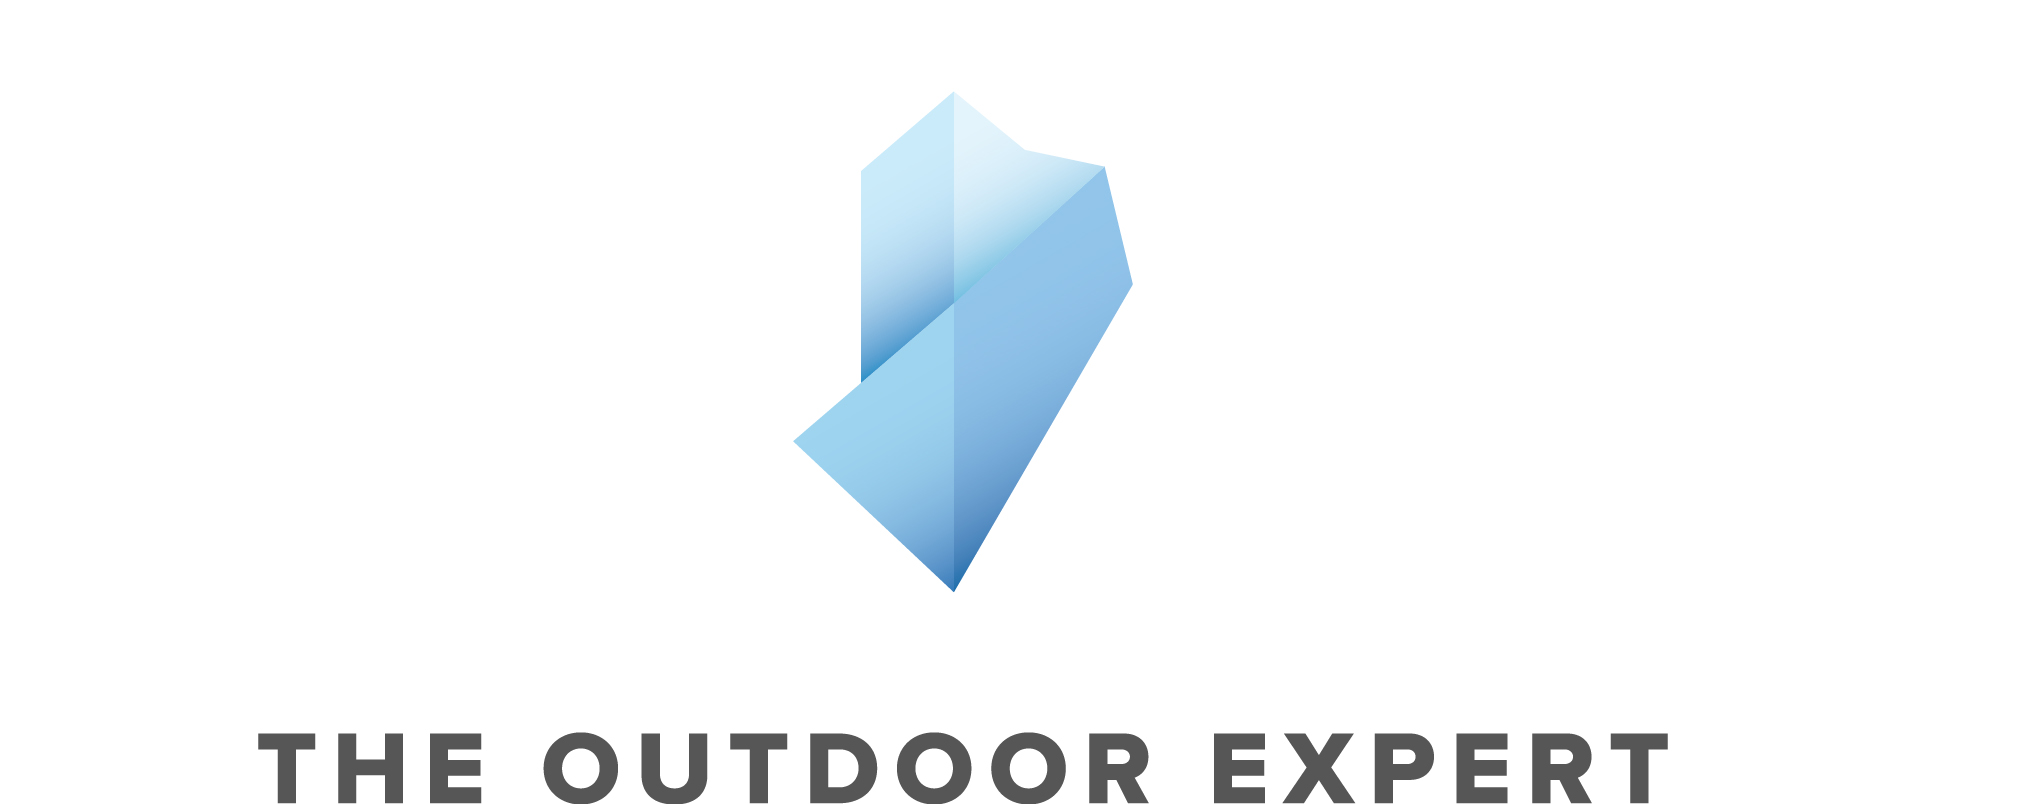 logo outdoorexperten